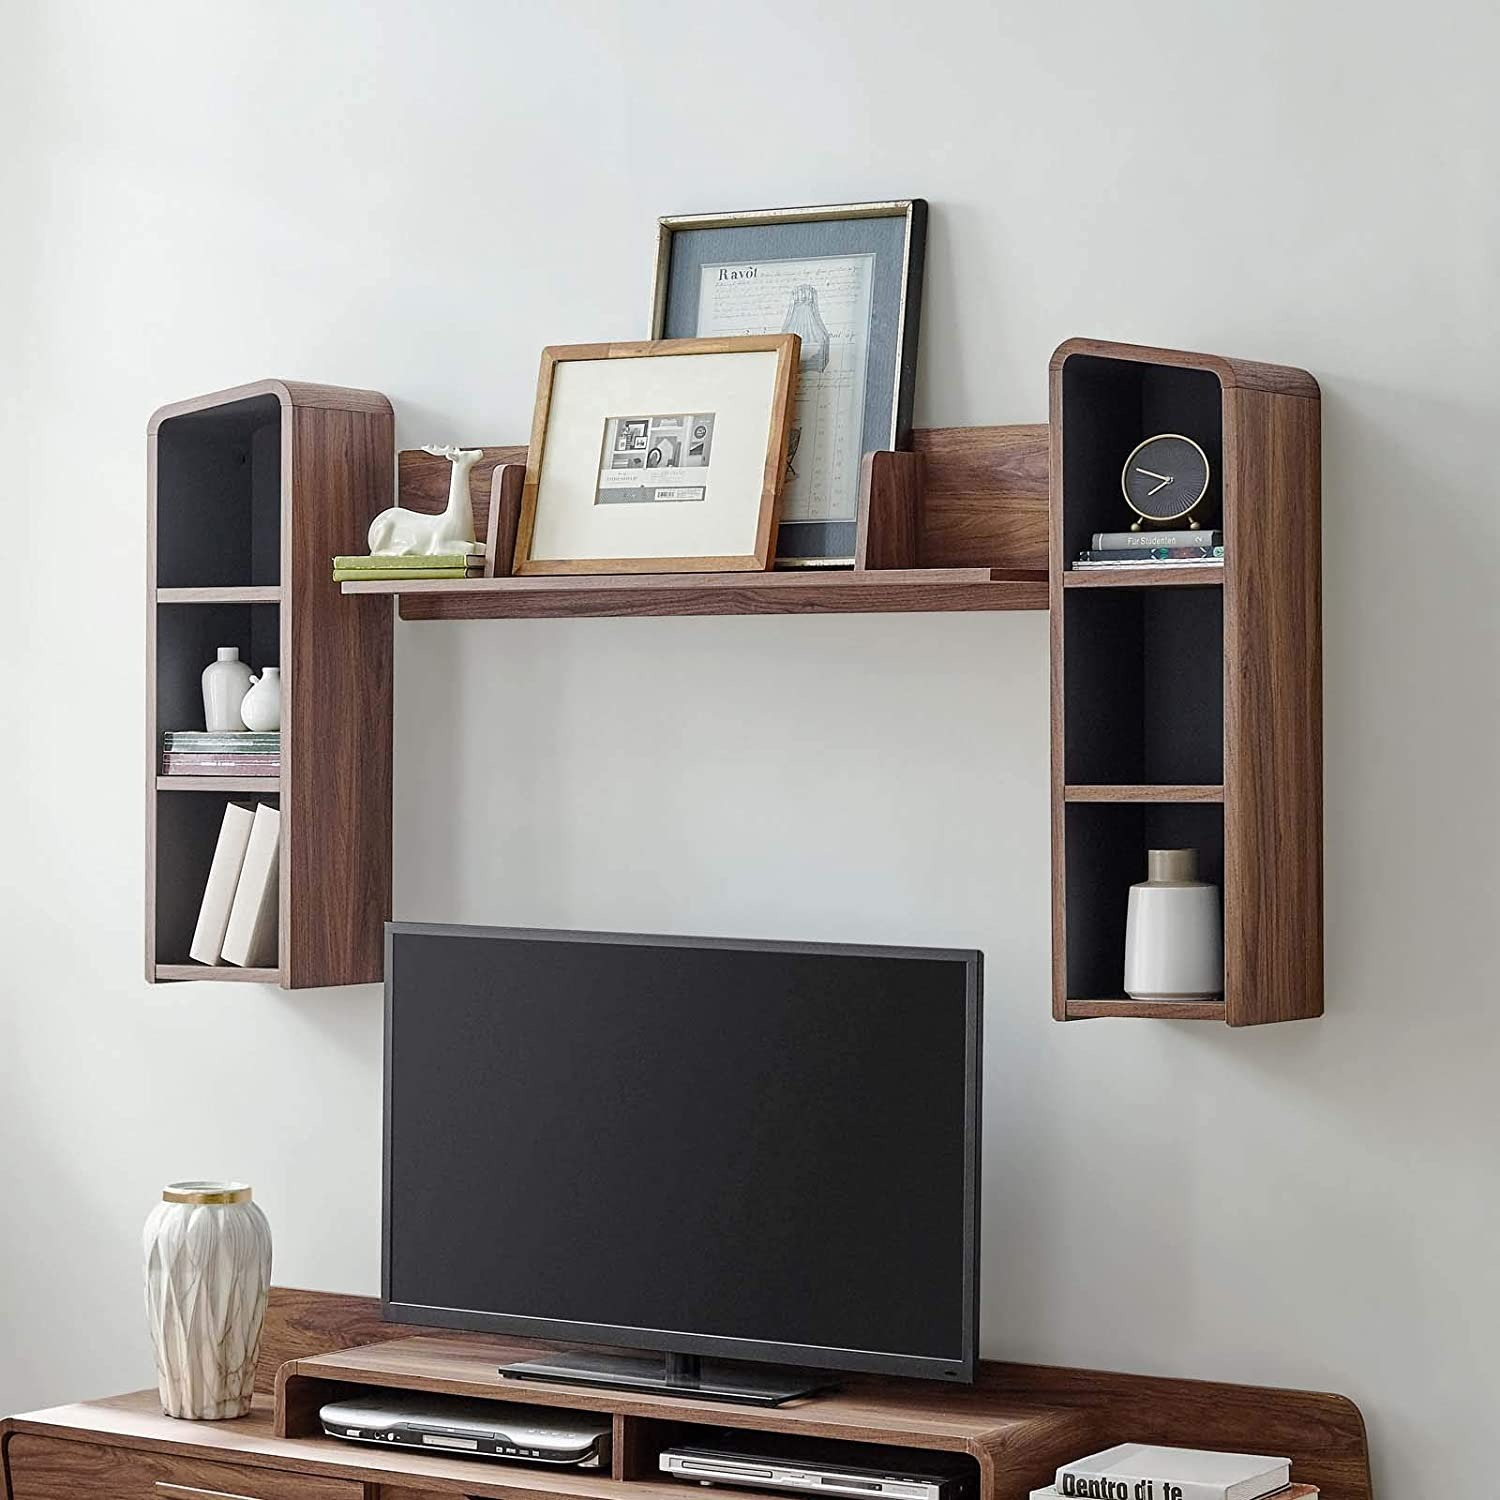 Wall Mounted Shelves In Walnut W/ Rounded Edges - image-2